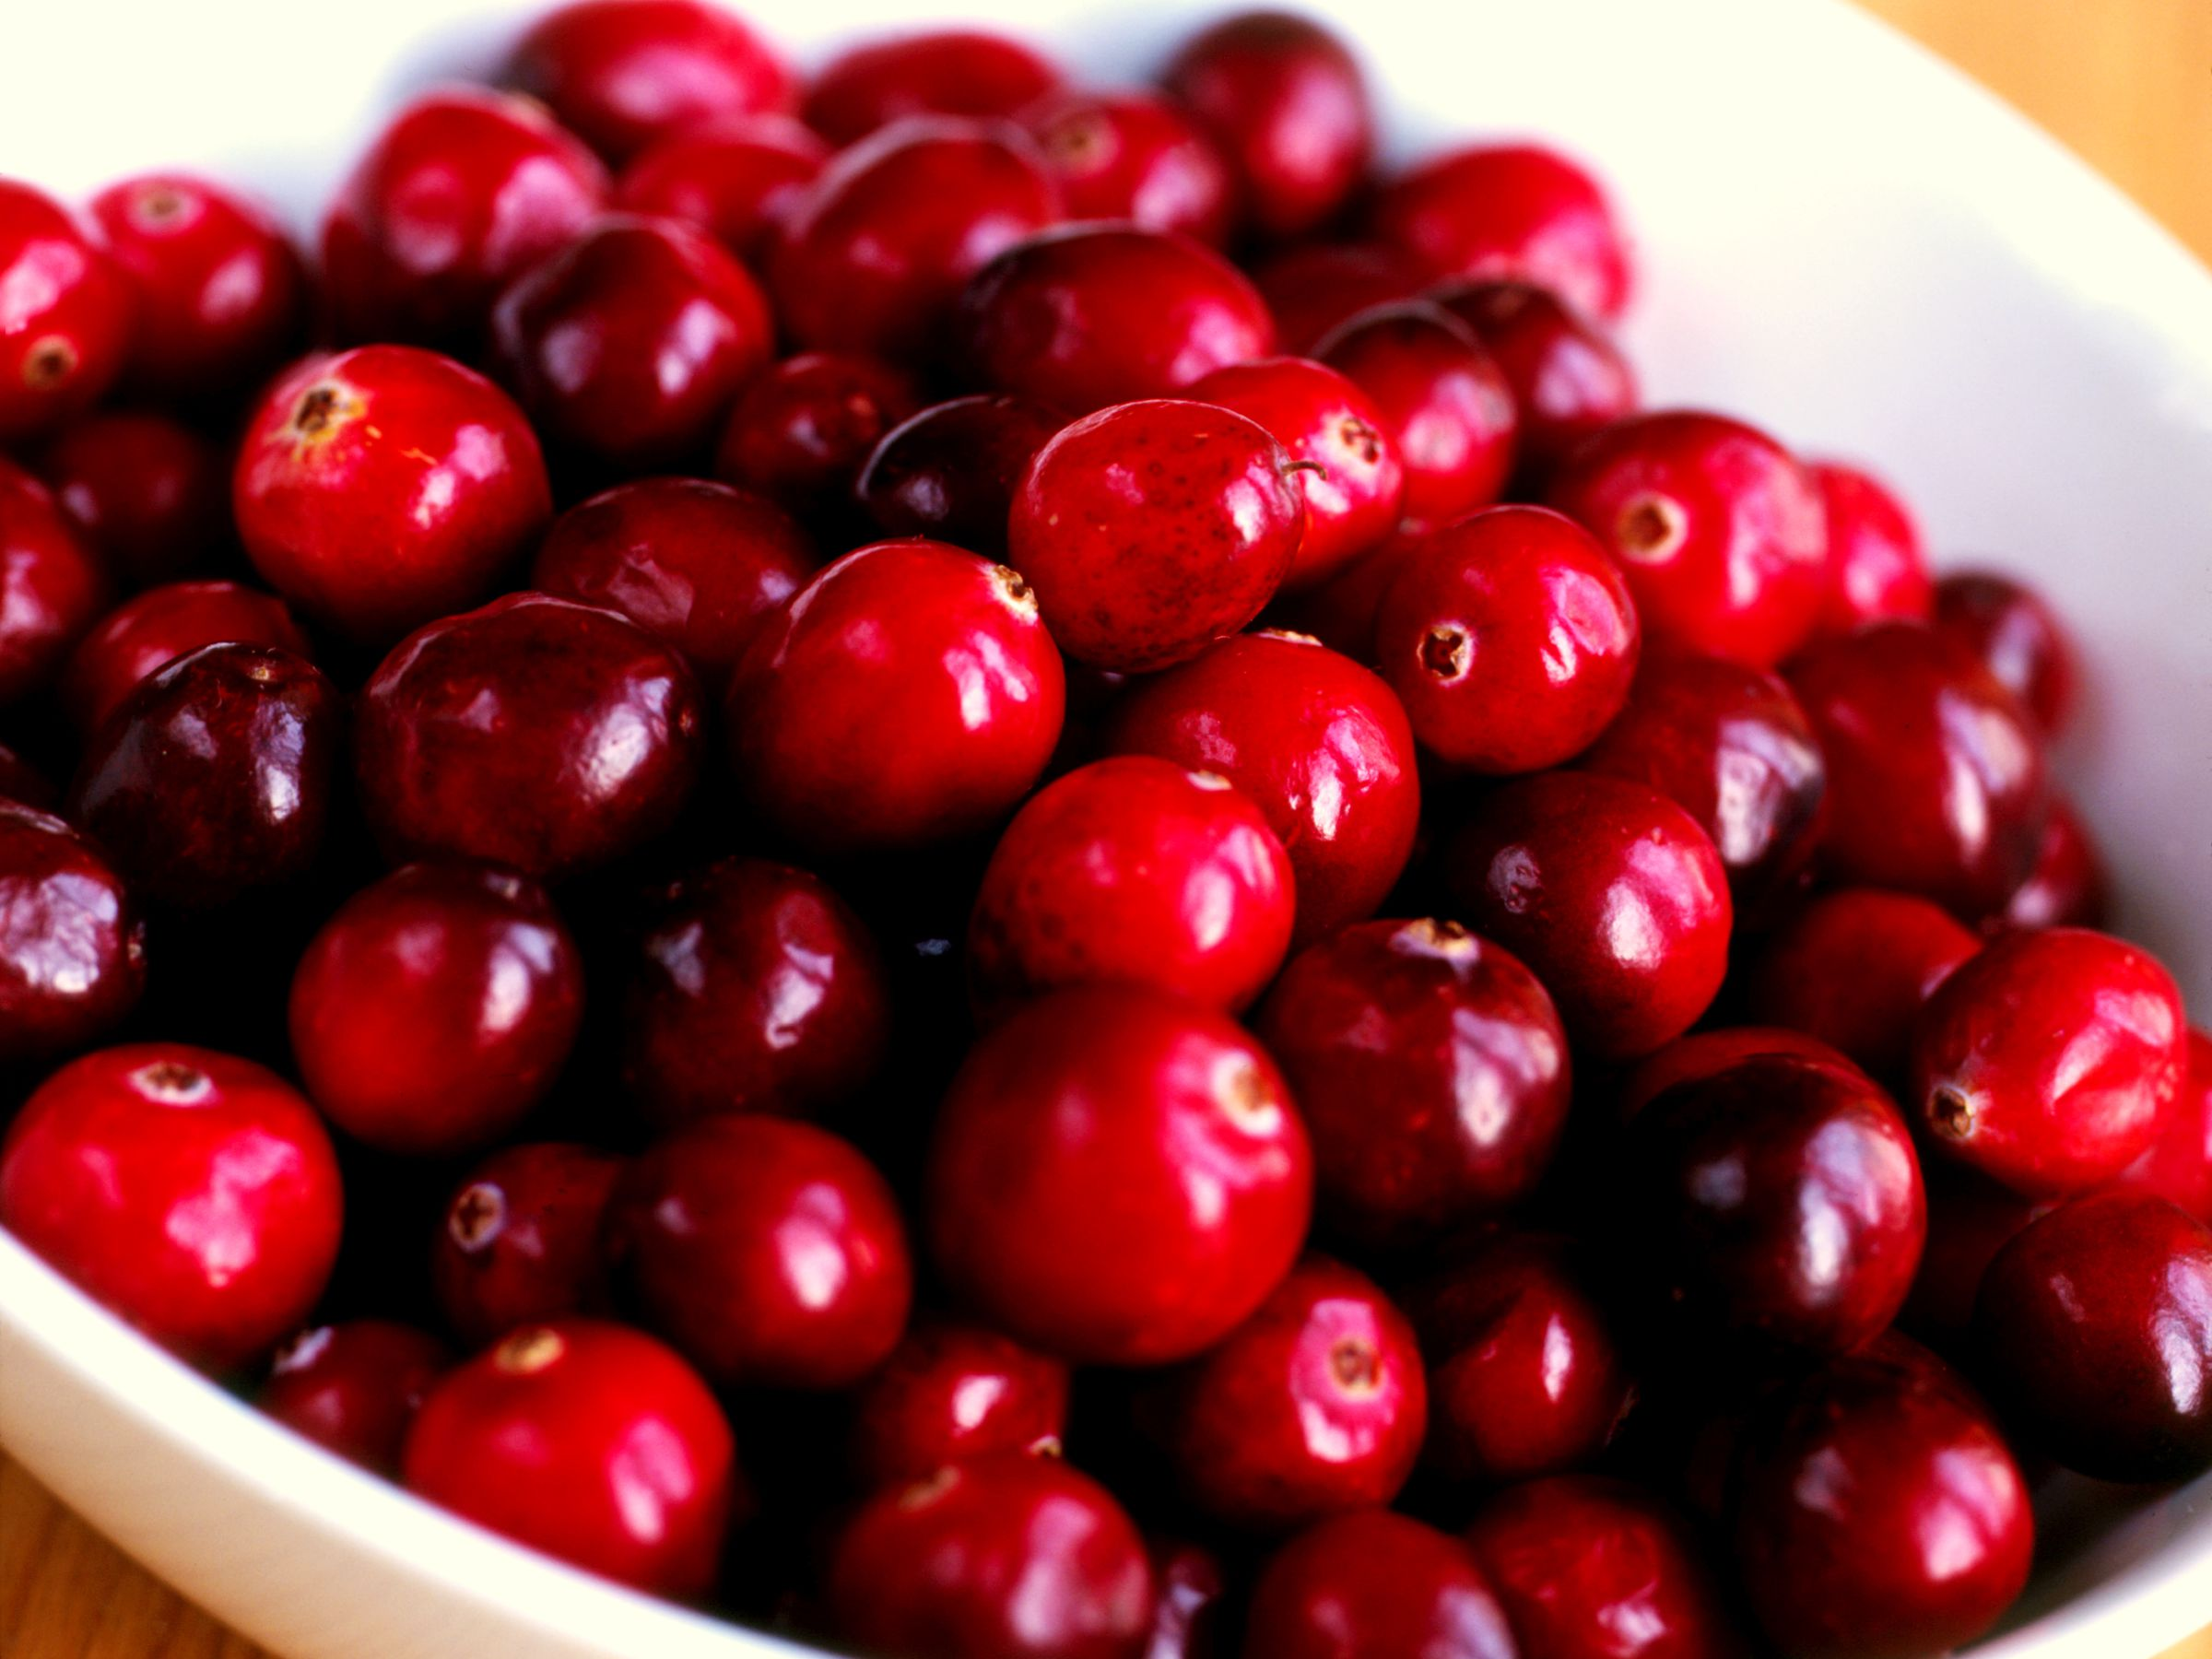 cranberries2x 56a4953a3df78cf772831bd2